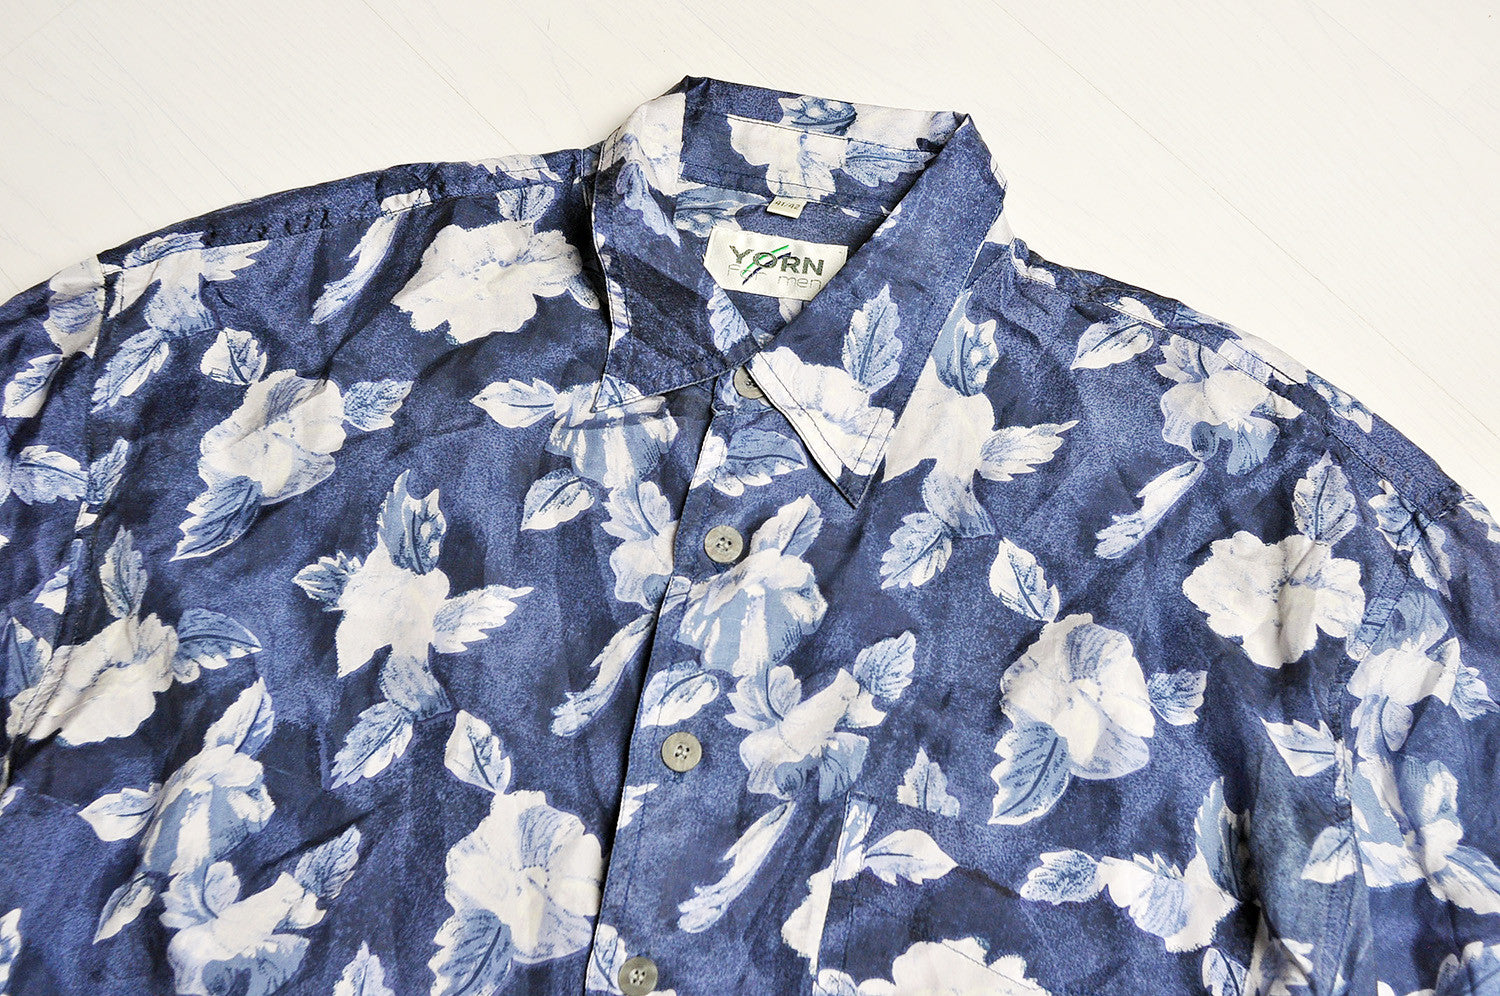 Vintage Navy/White Rose Patterned Short Sleeve Silk Shirt